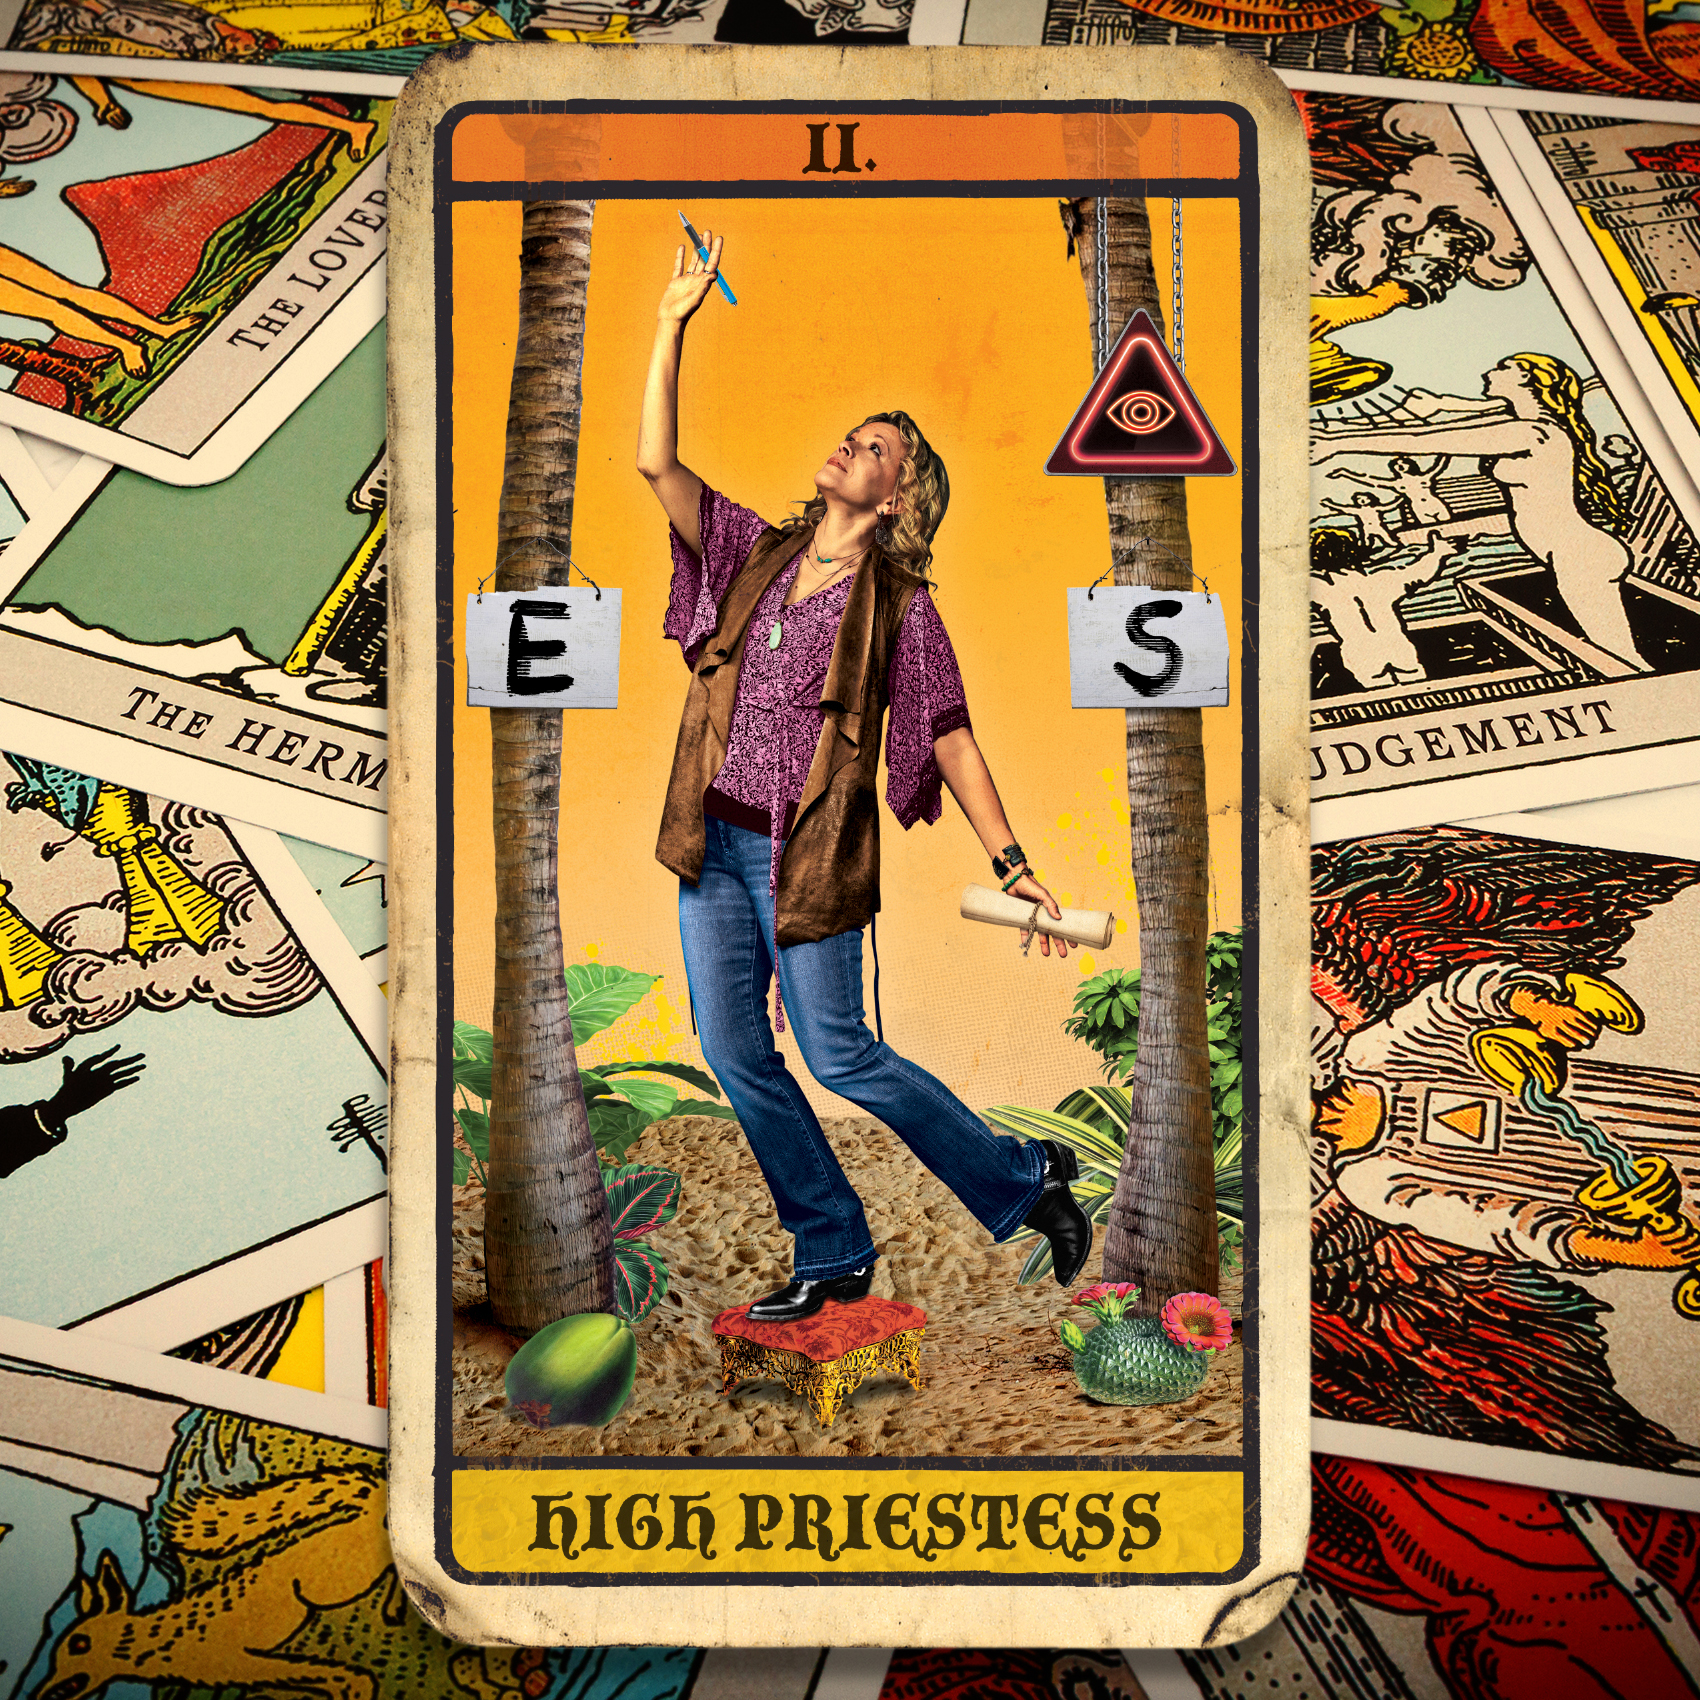 High Priestess Lodge-49 AMC TV.jpg